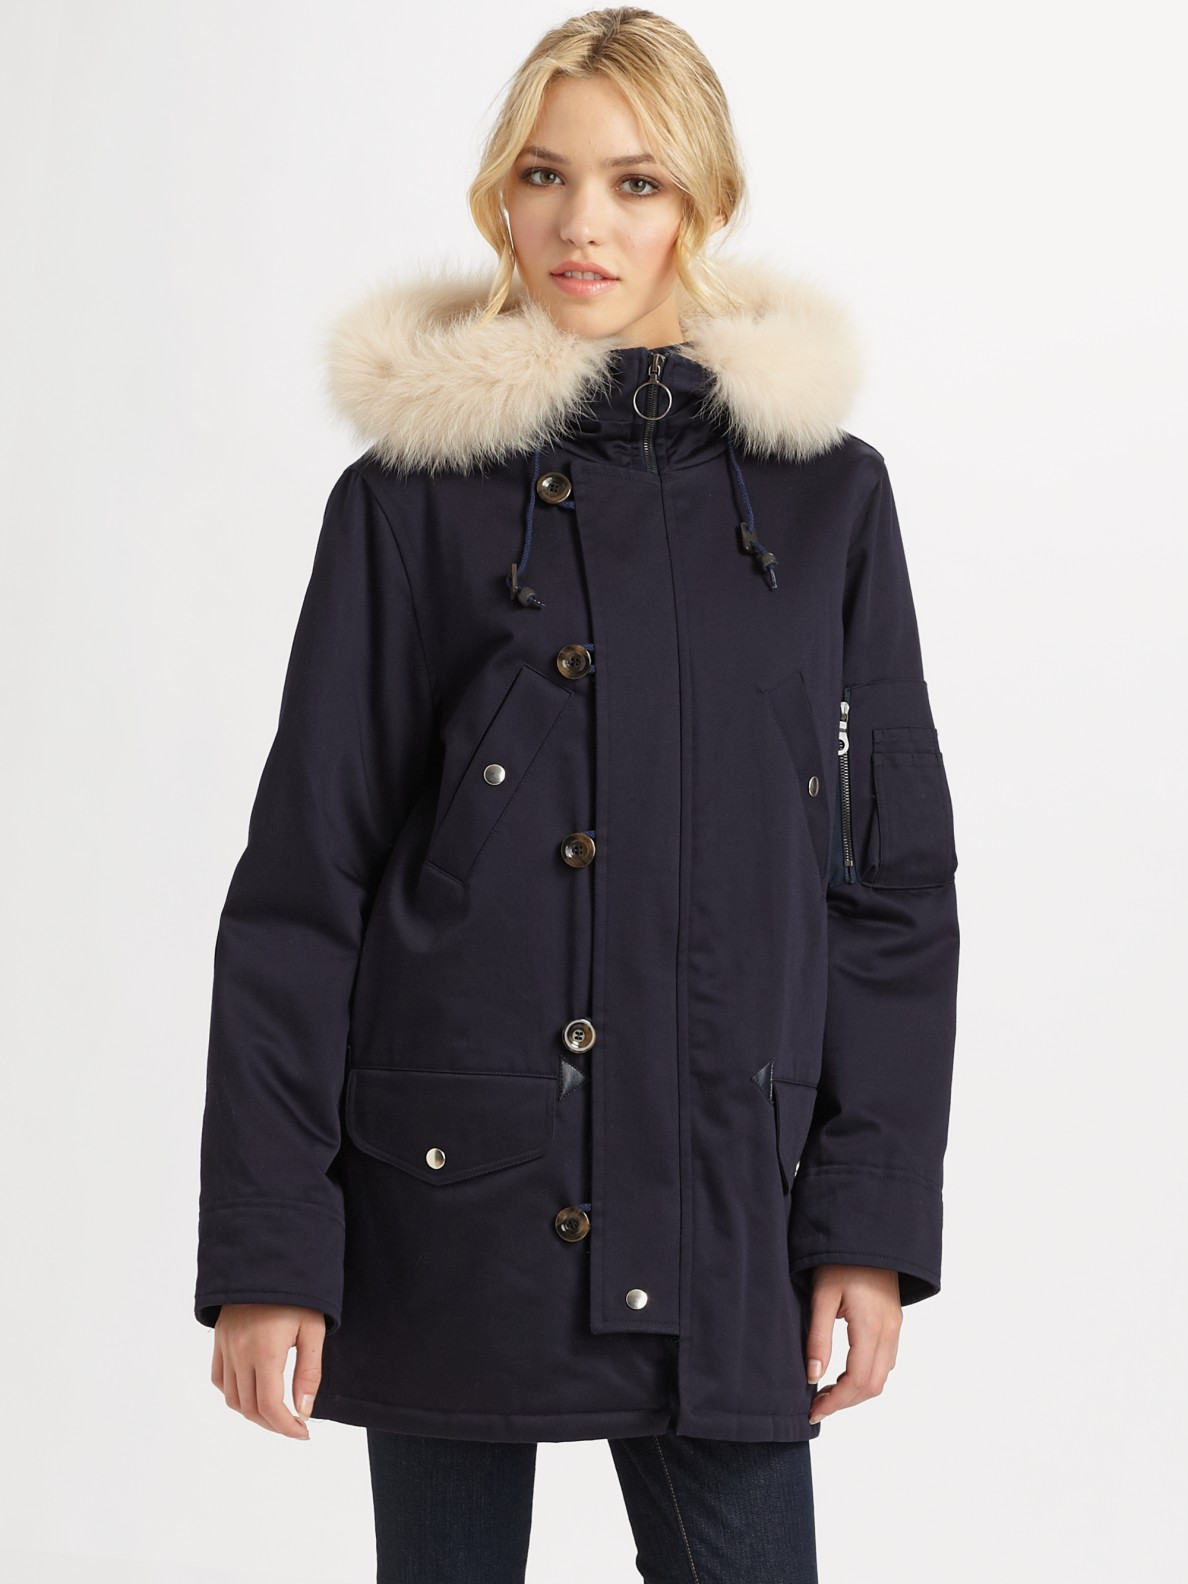 A.p.c. Fur-trimmed Hooded Parka in Blue | Lyst